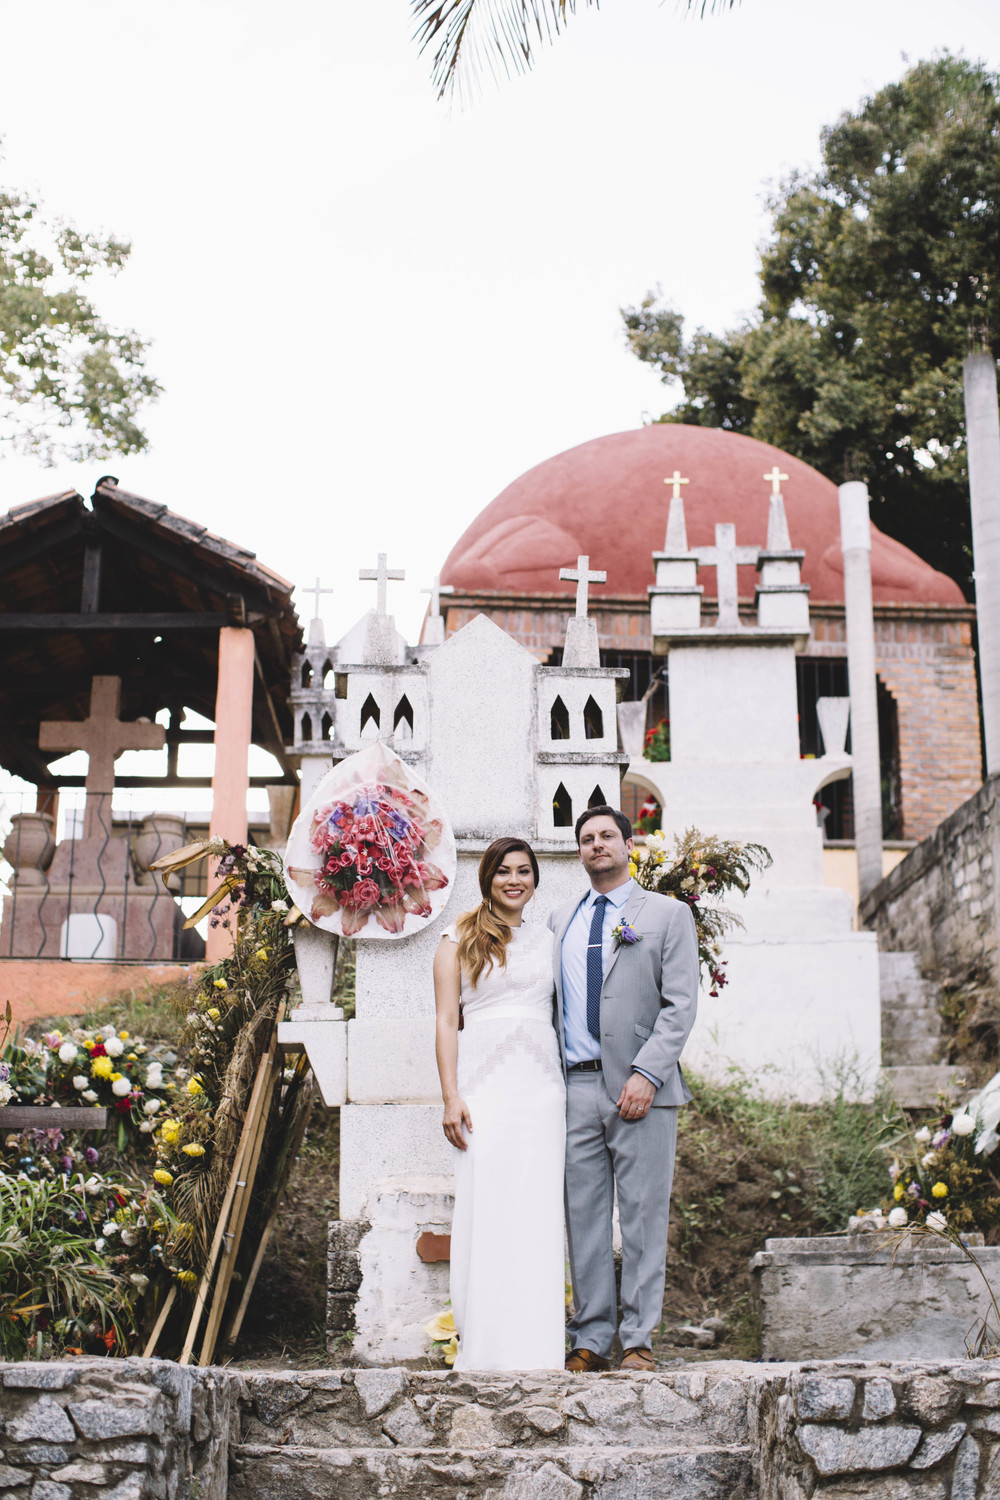 20160206_Diana+Dave_sayulitawedding_mexico_wedding-079.jpg